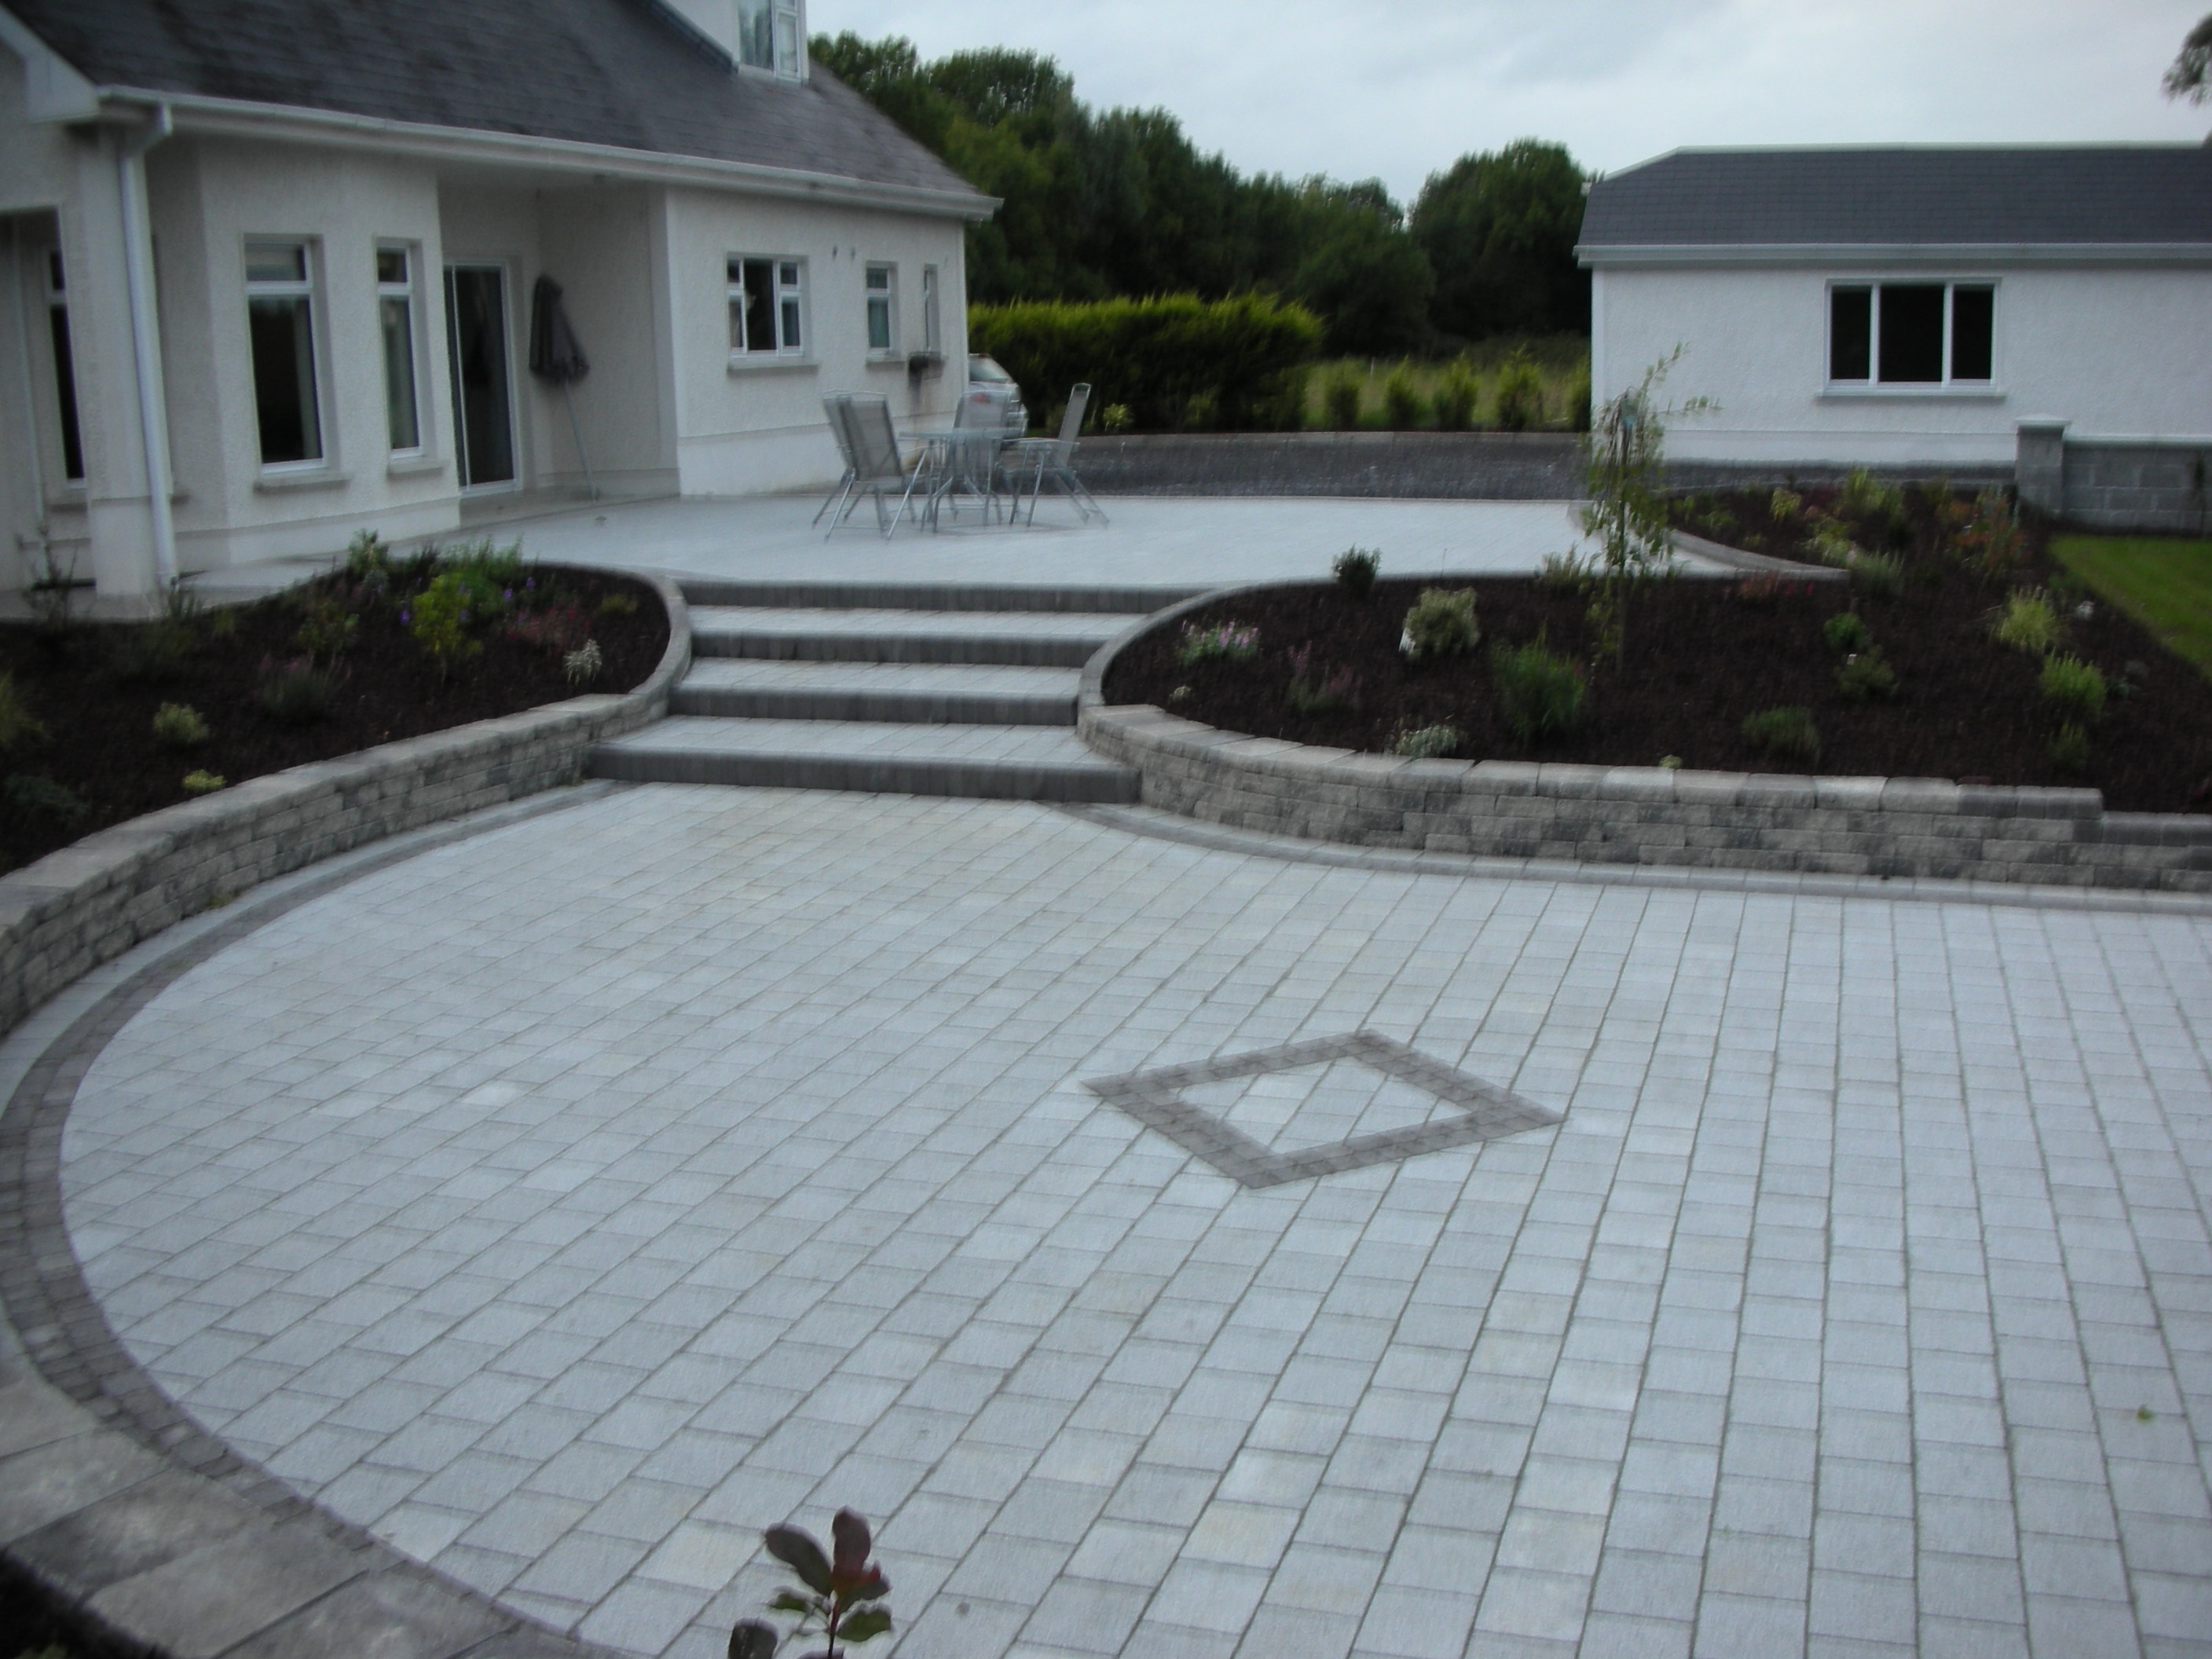 Stepped Paving area incorporating retaining wall to create raised shrub & flower bed.Walling.